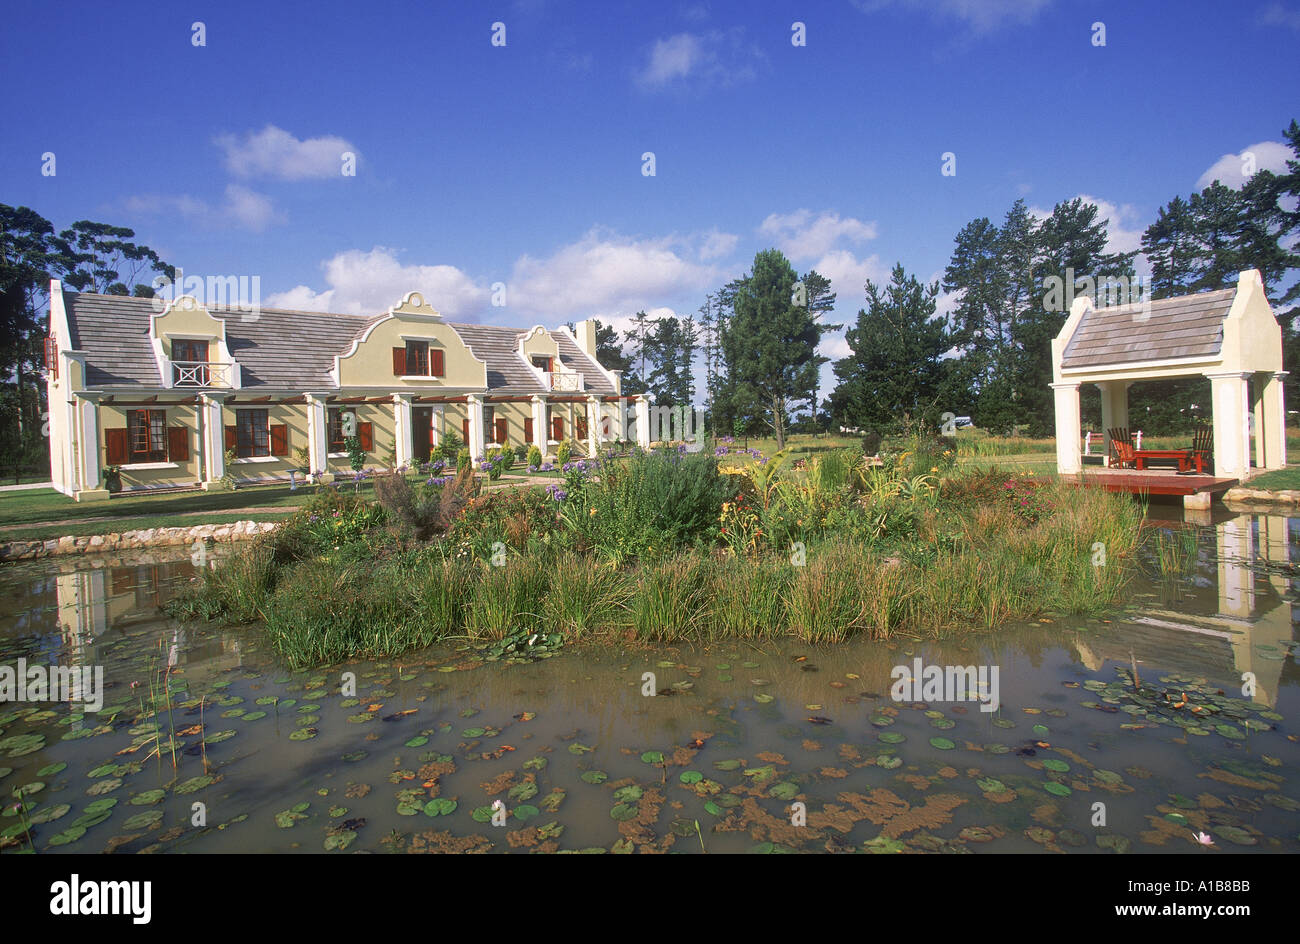 Dutch architecture Huguenot guest house South Africa A Evrard - Stock Image